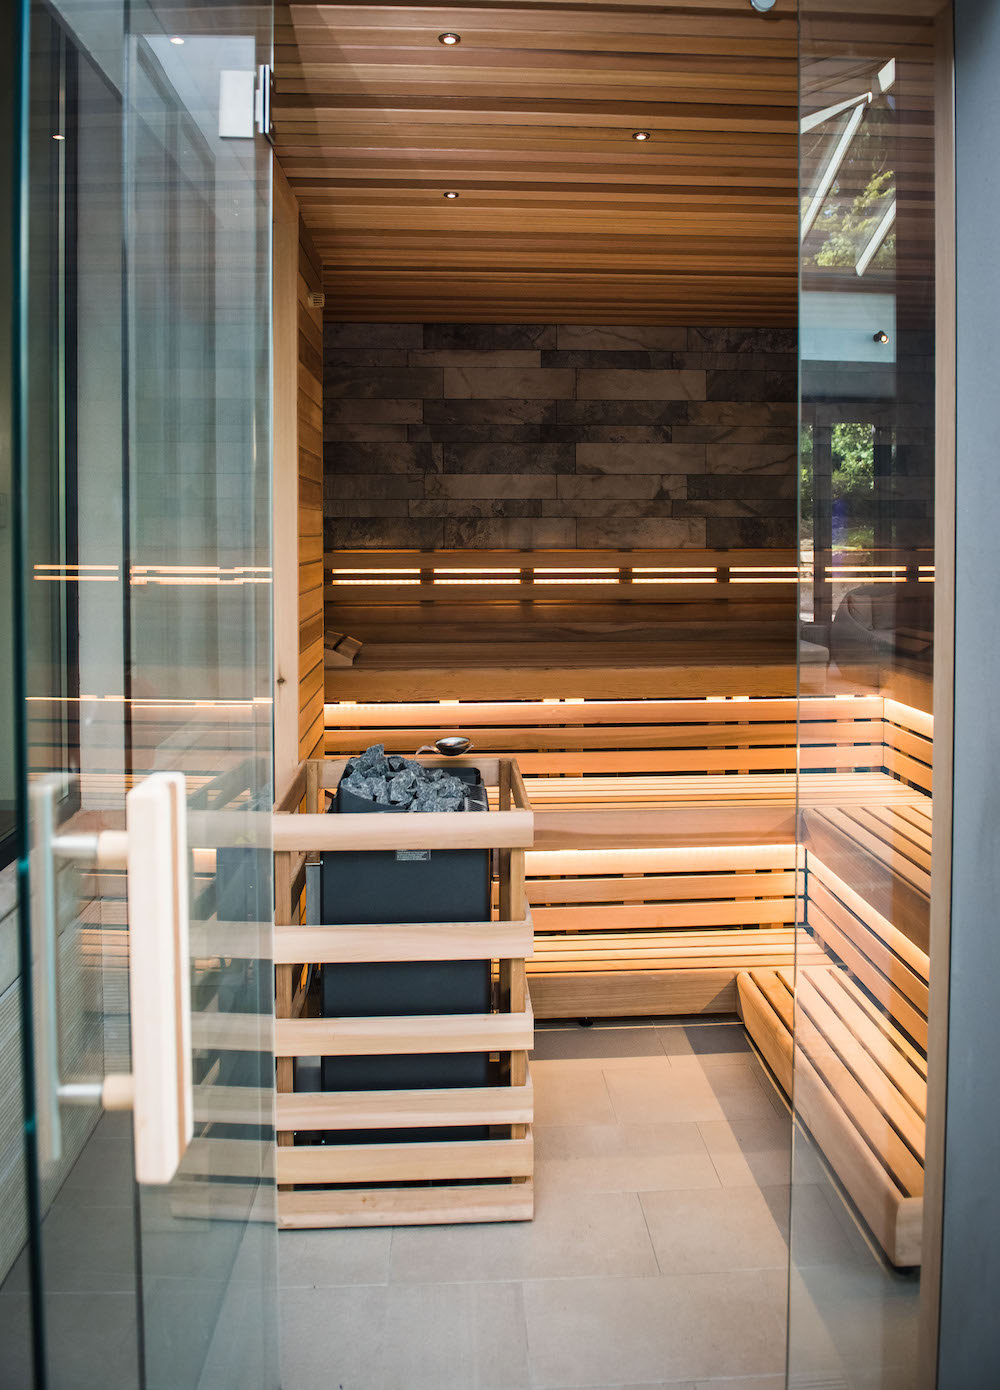 Image of empty sauna